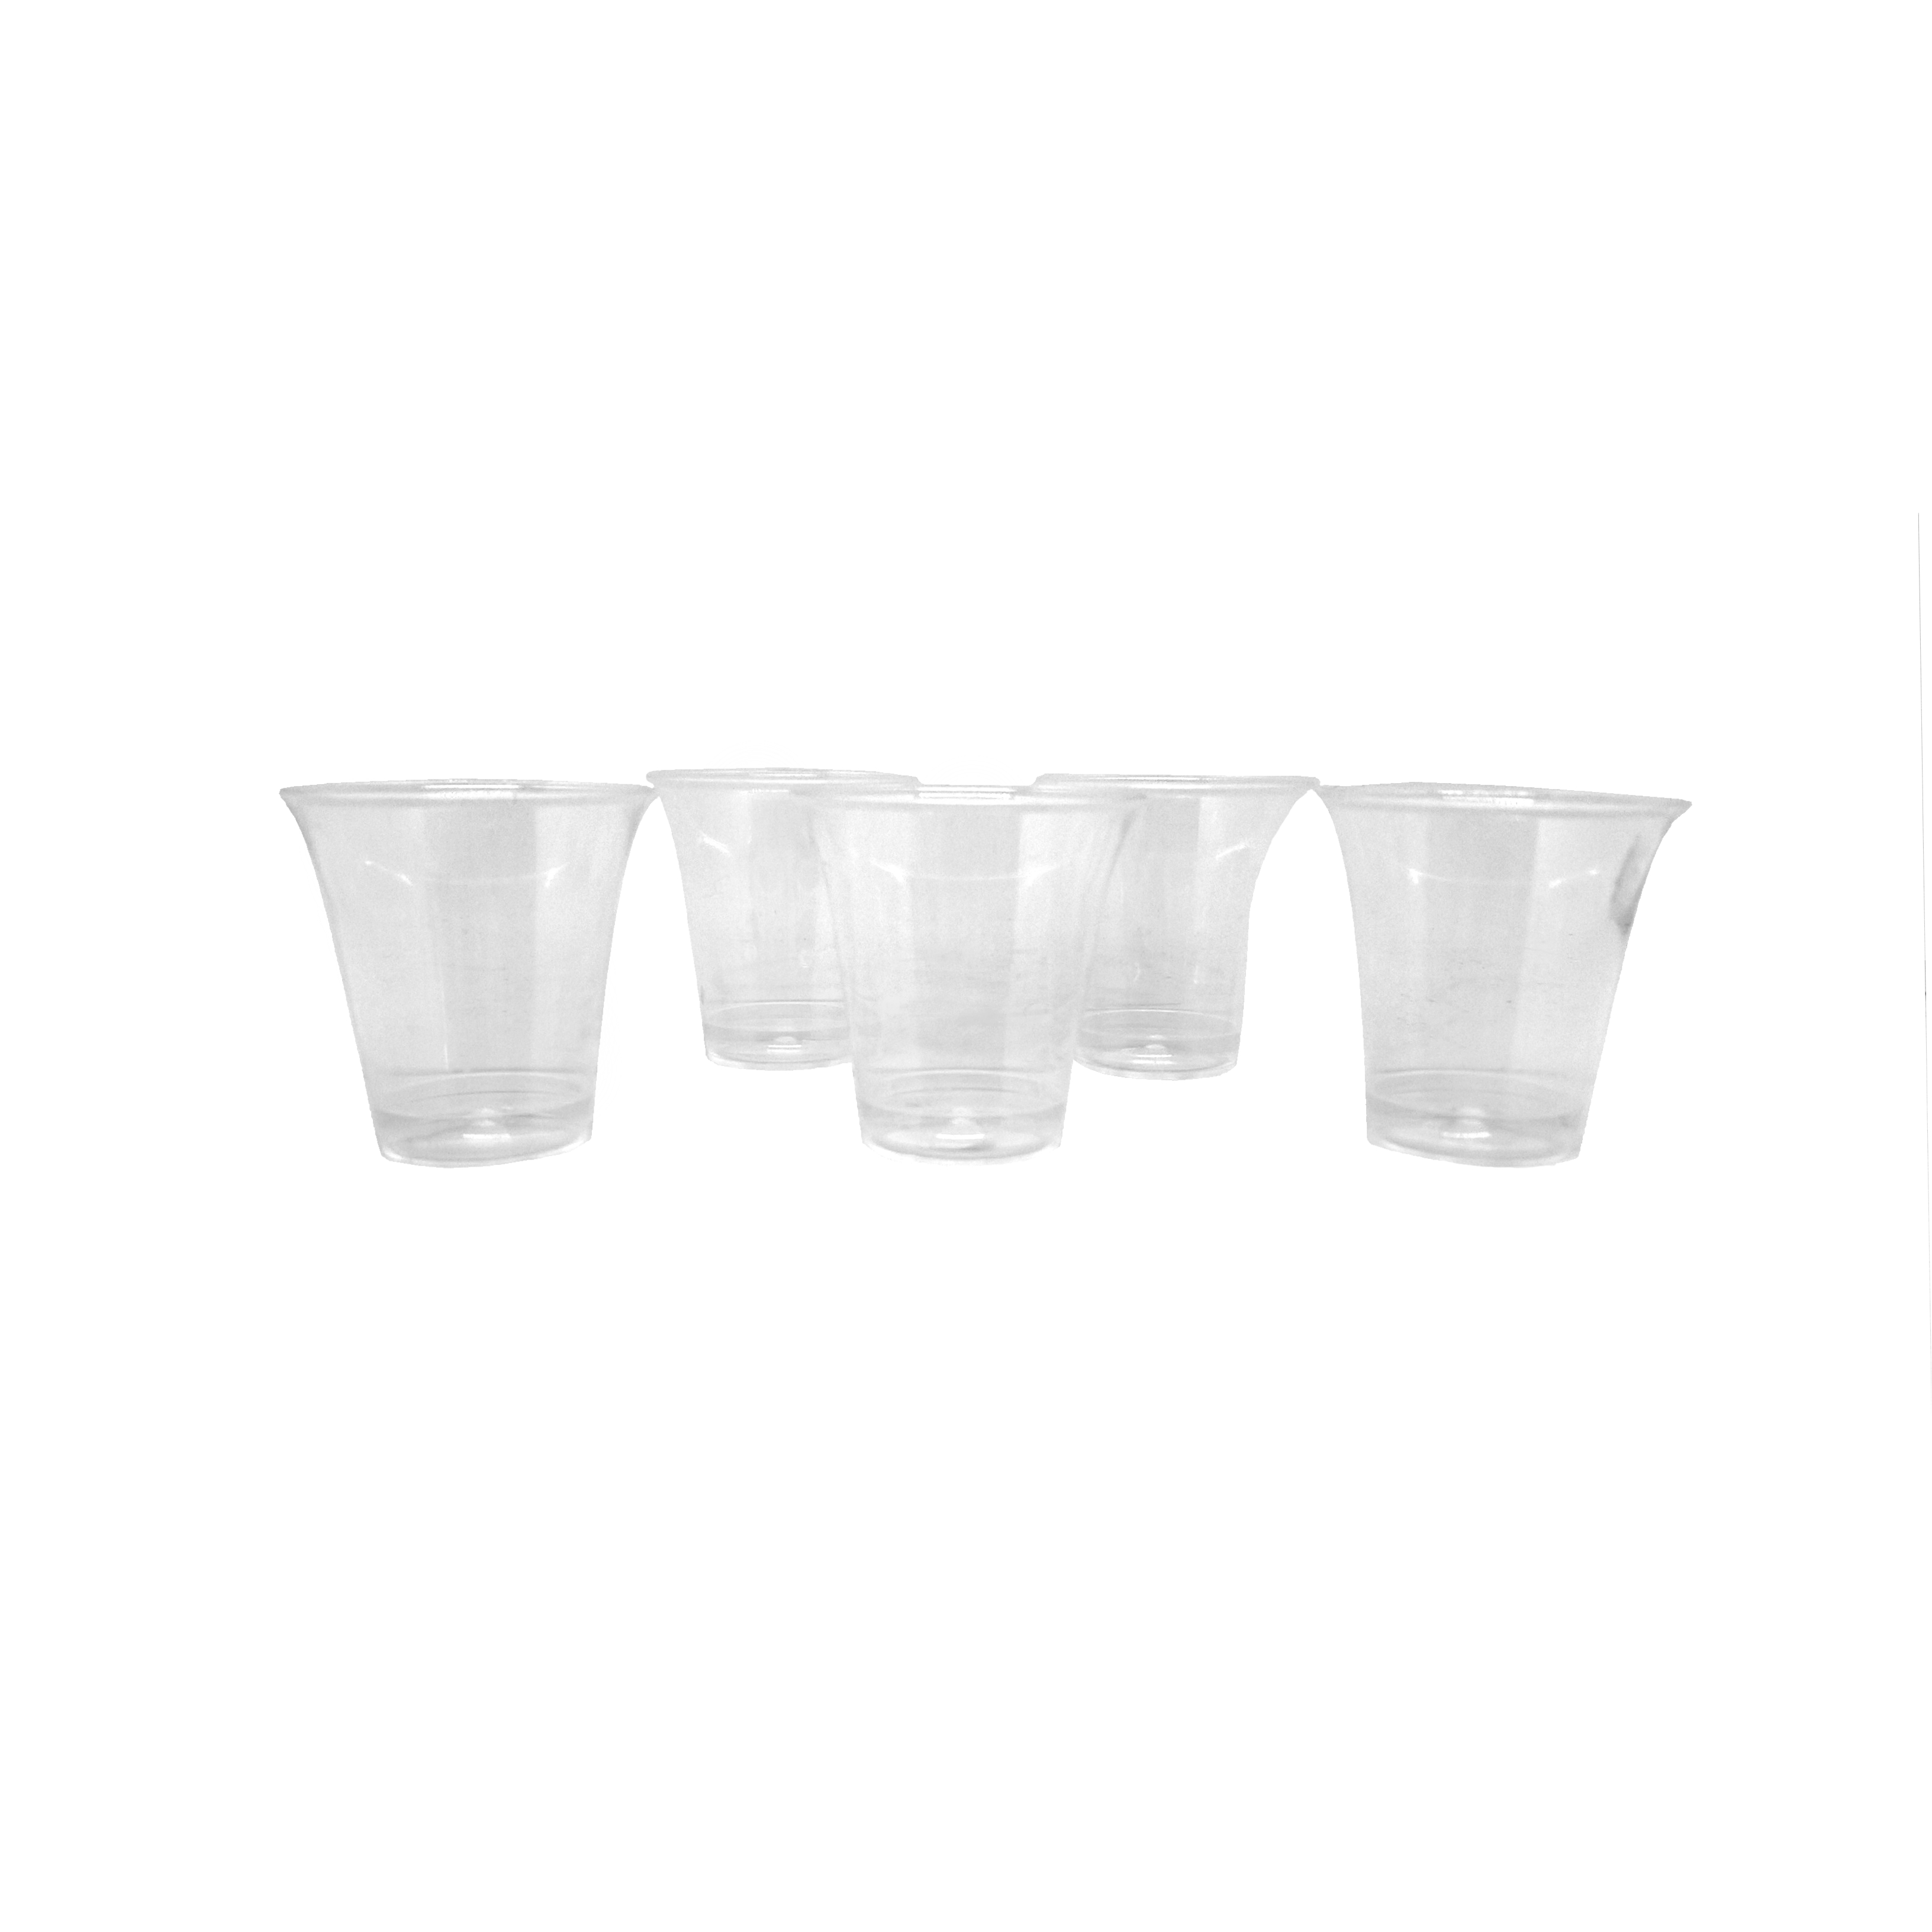 FWM - Communion Cups | Disposable Communion Cups | Glass Cups | Stainless  Steel Communion Cups